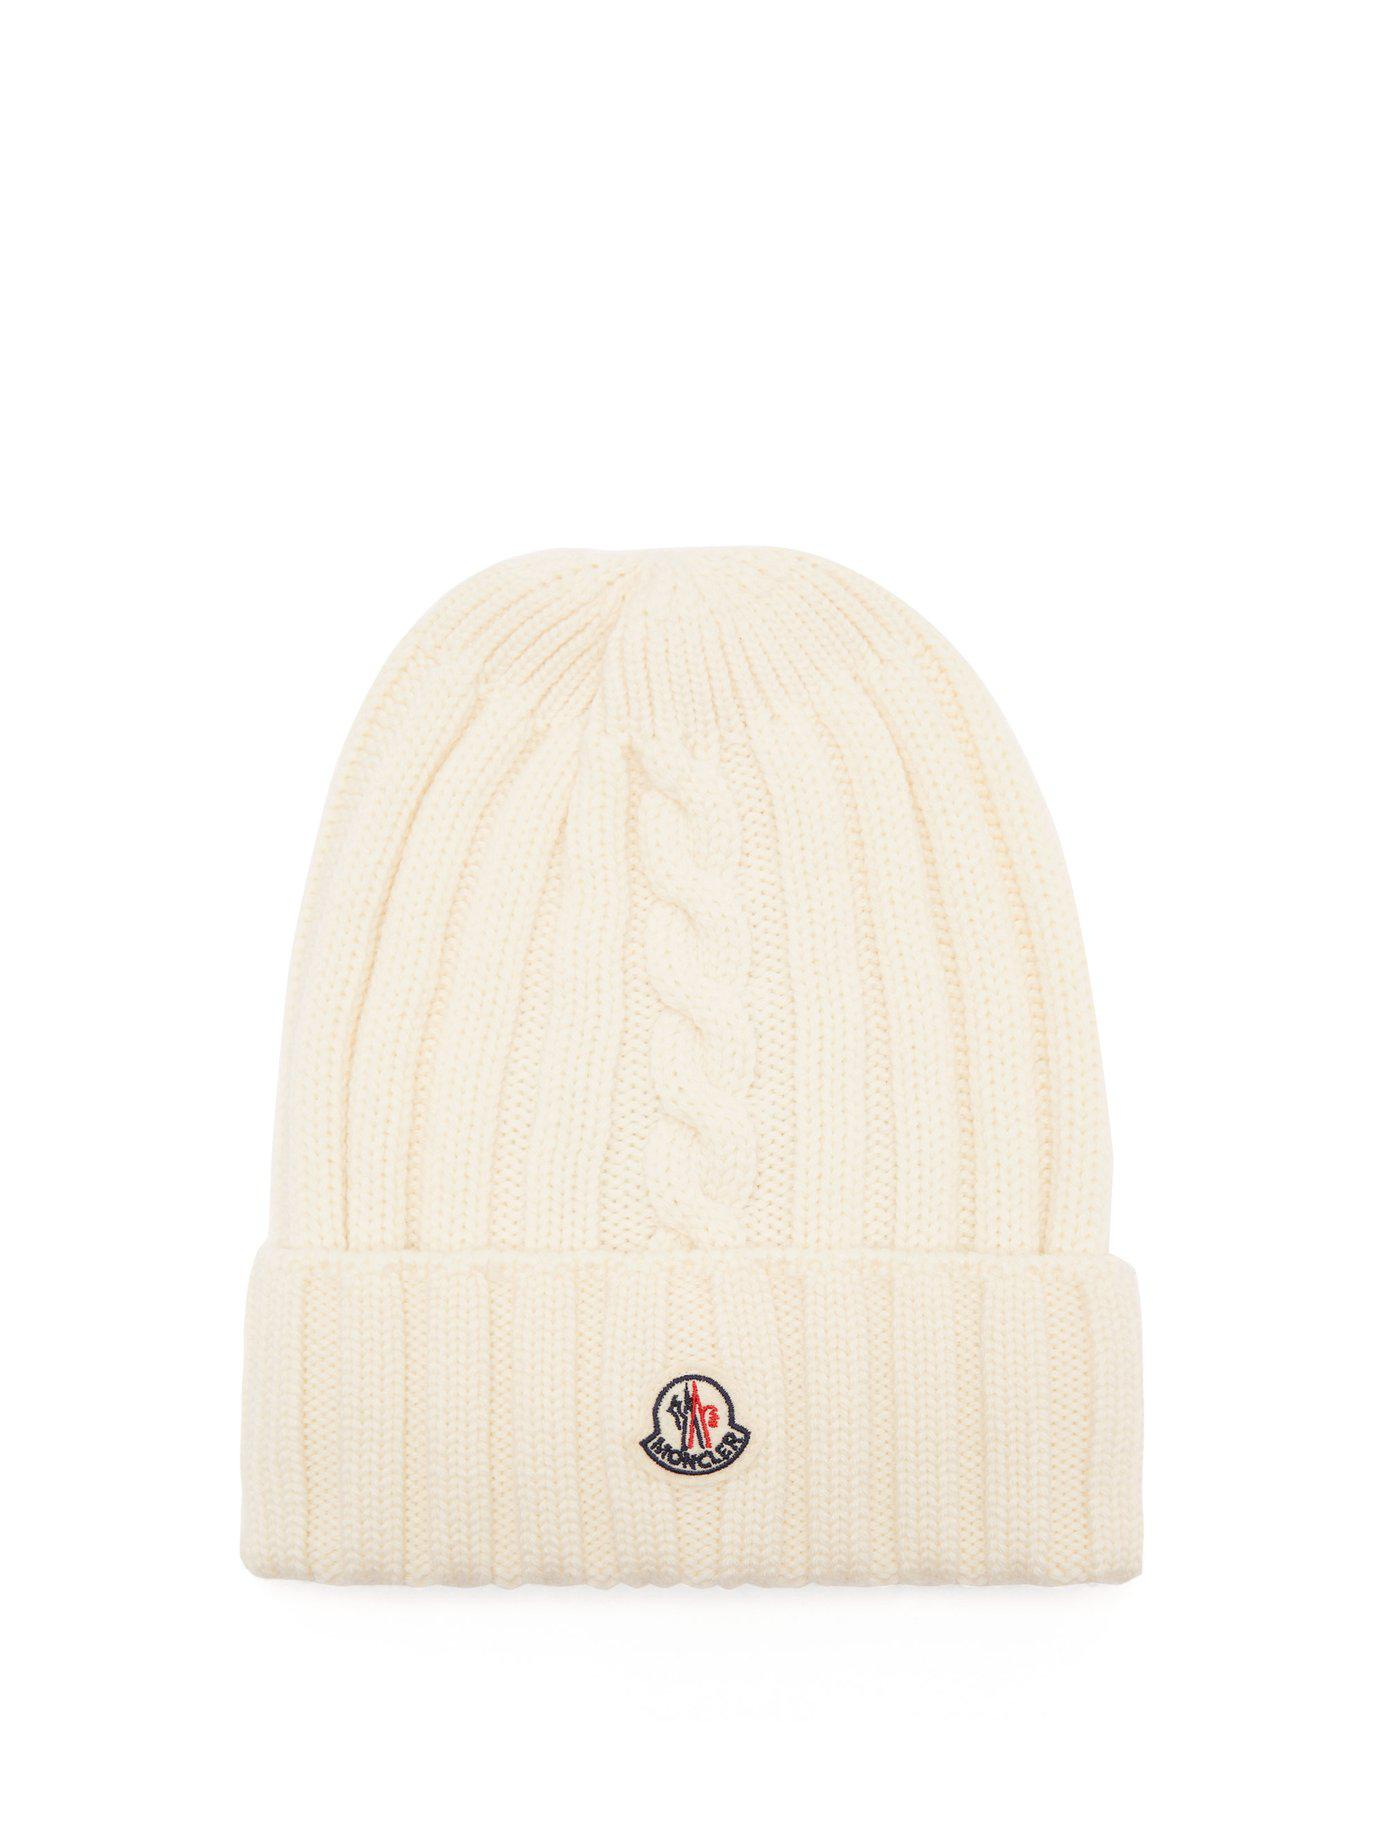 810afd1bce3d2 Lyst - Moncler Rib Knit Wool Beanie Hat in White - Save 15%